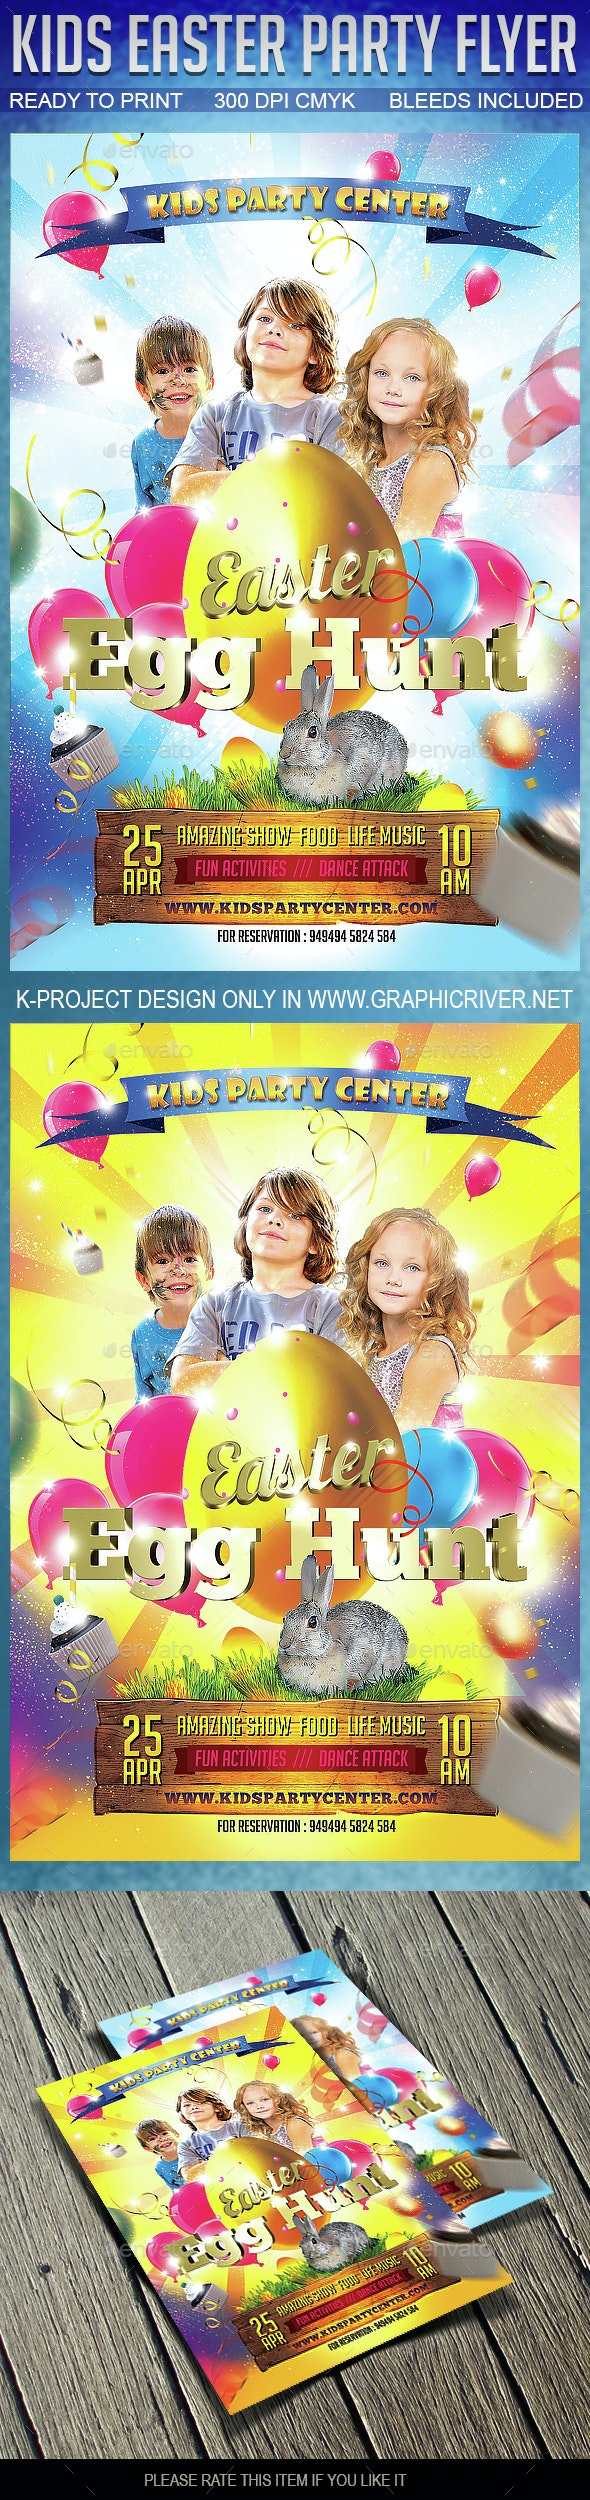 Kids Easter Party Flyer - Events Flyers